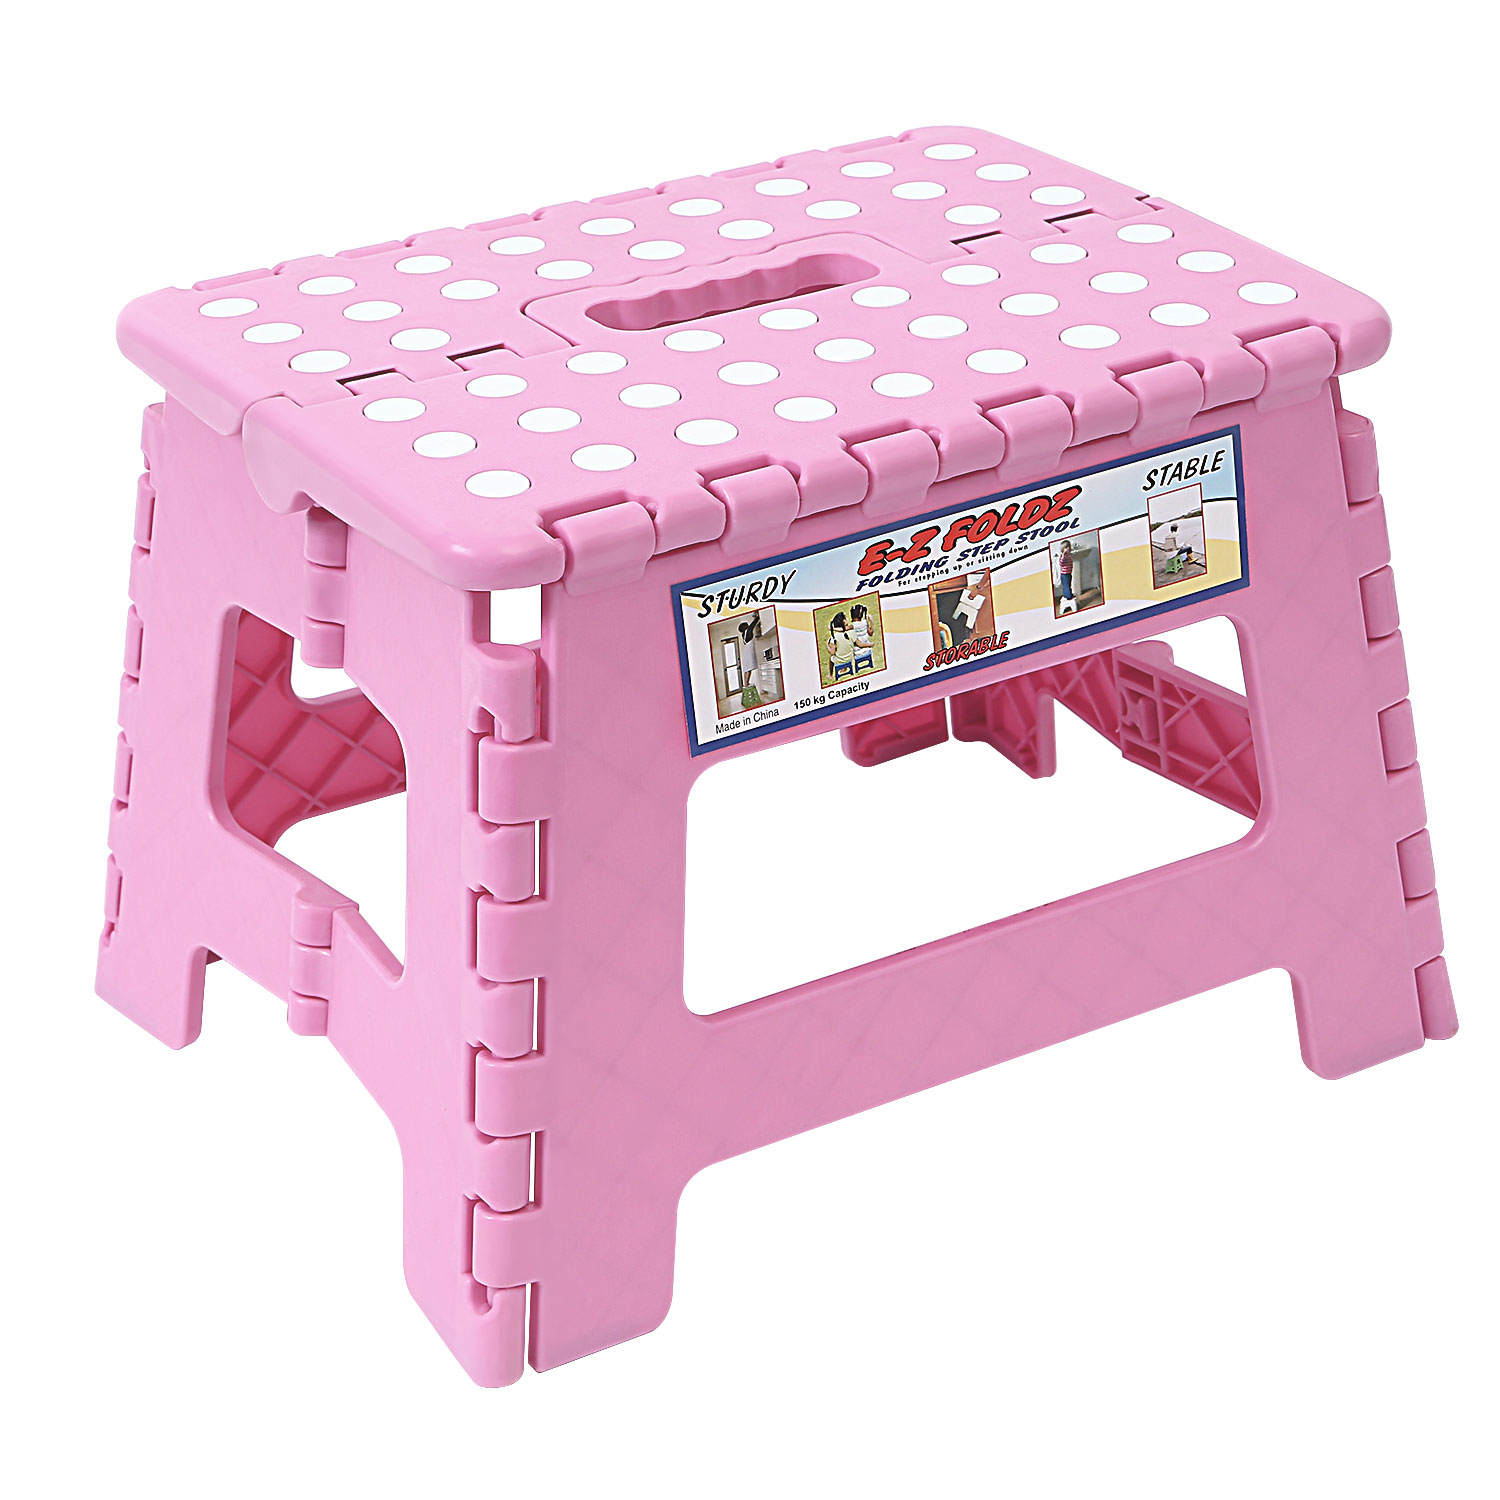 Stepping stool for toddlers kids bathroom kitchen foldable step ladder anti slip ebay Bathroom step stool for kids